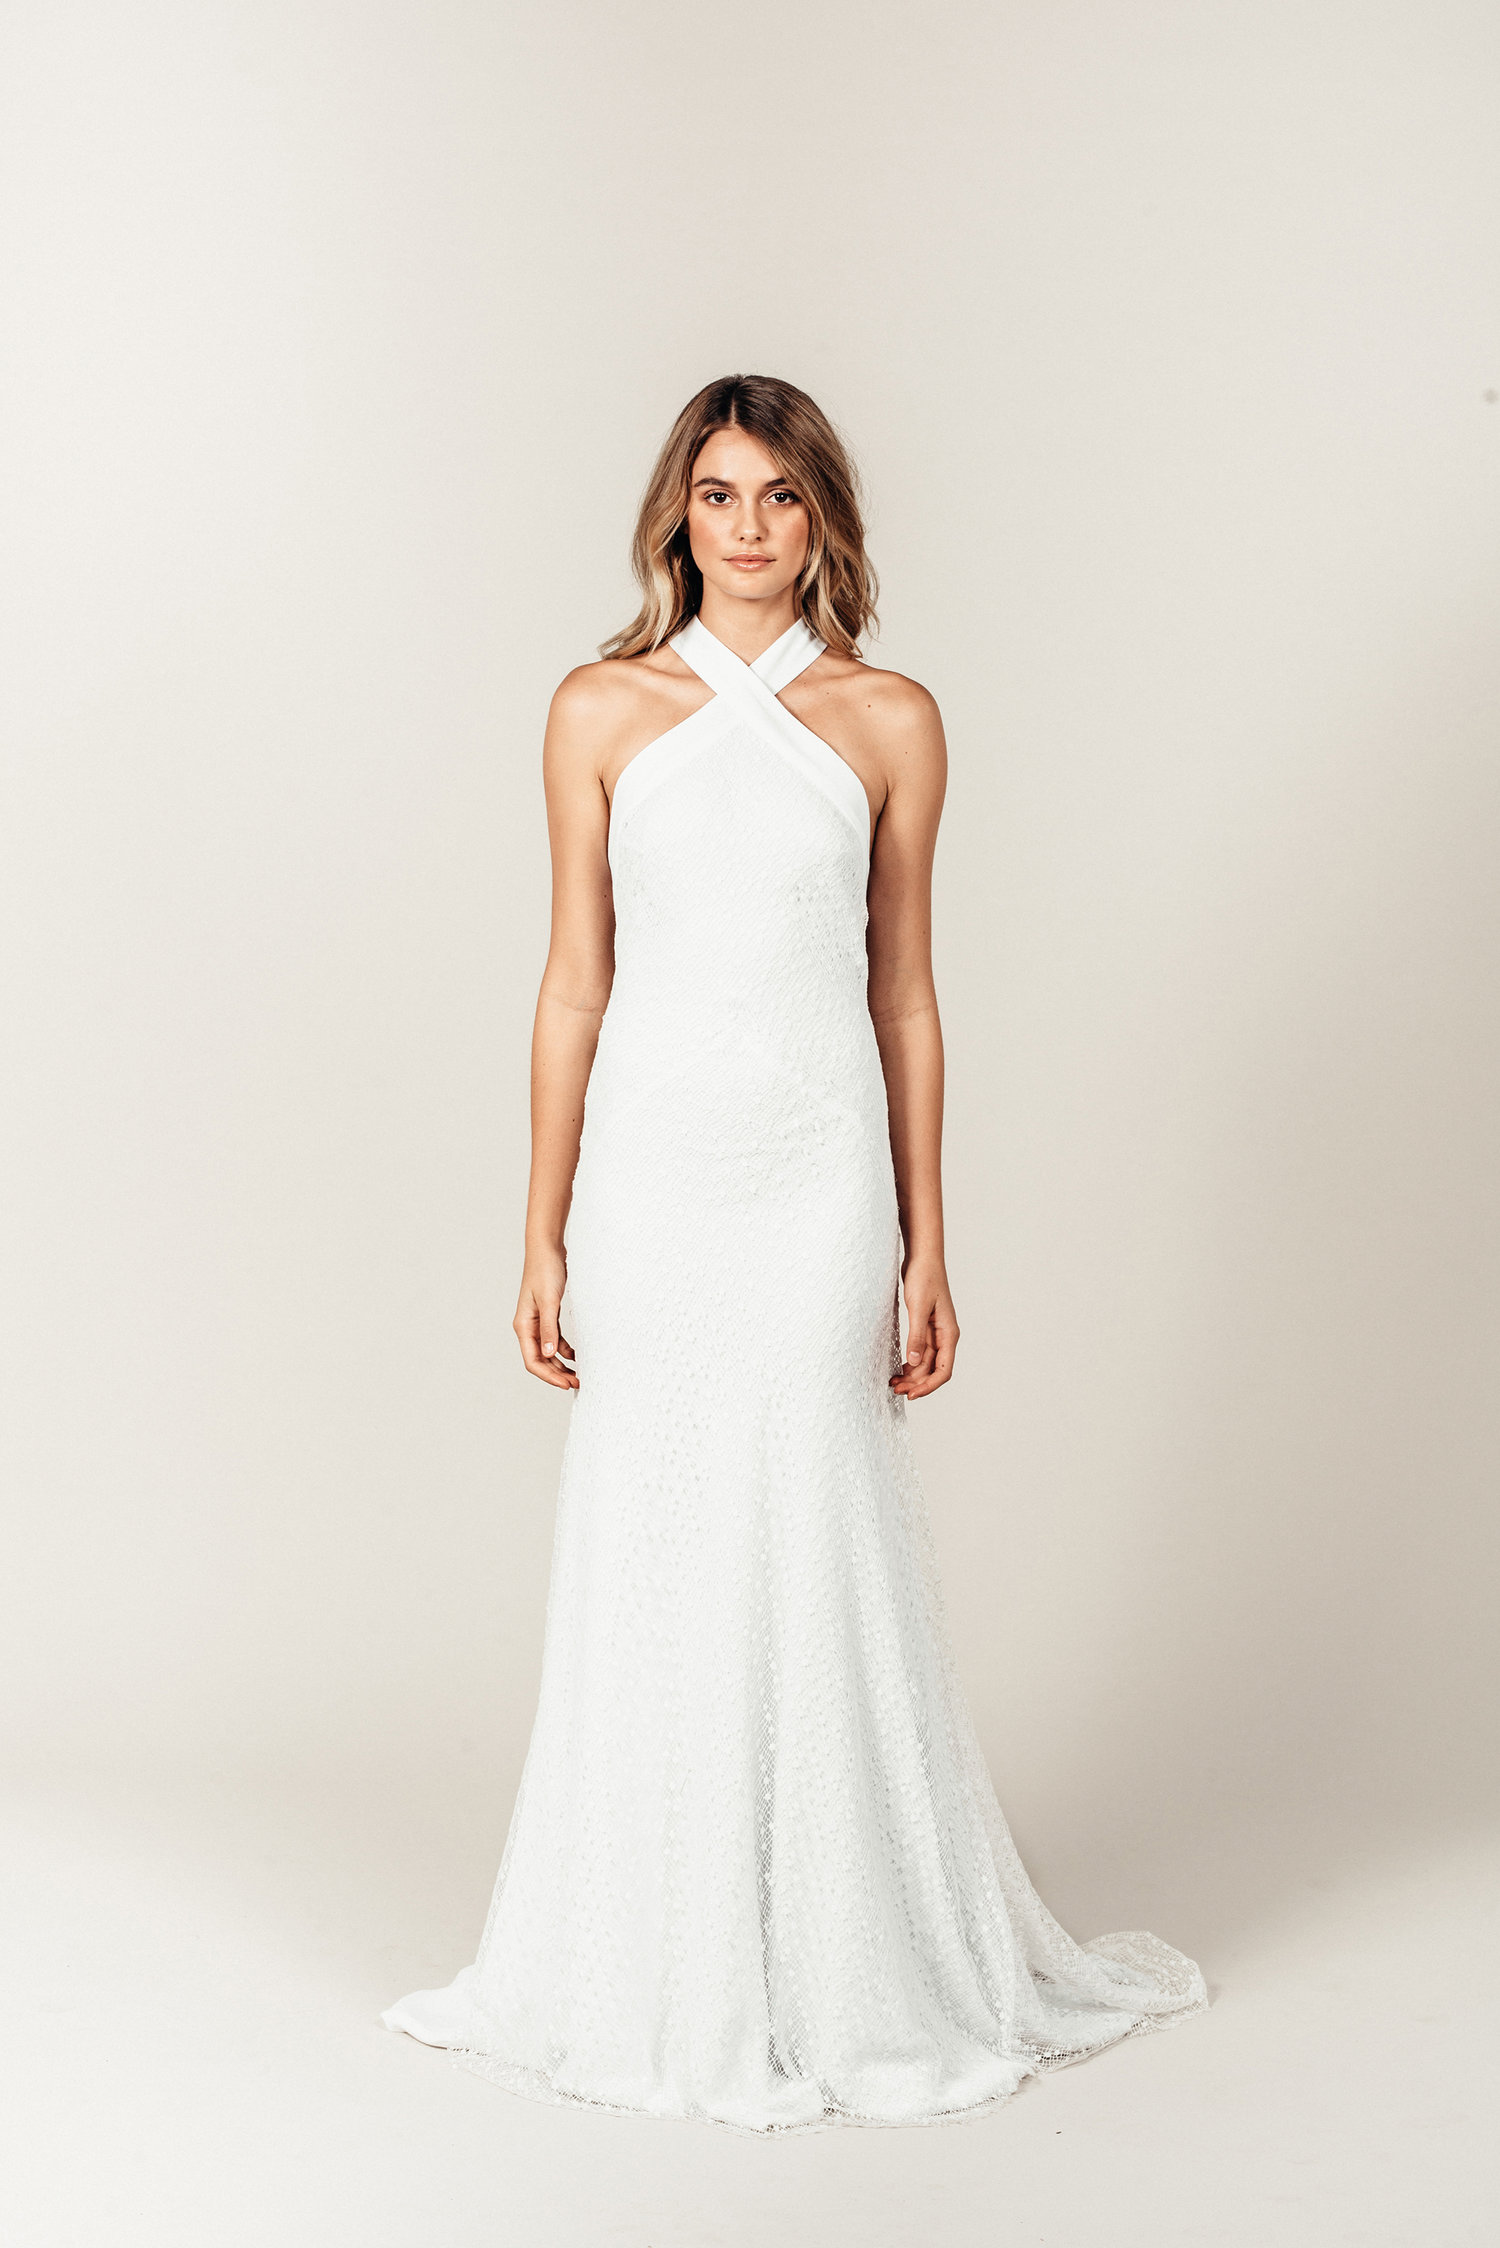 The Chloe Halter Neck Wedding Dress by Prea James Bridal featured on LOVE FIND CO.